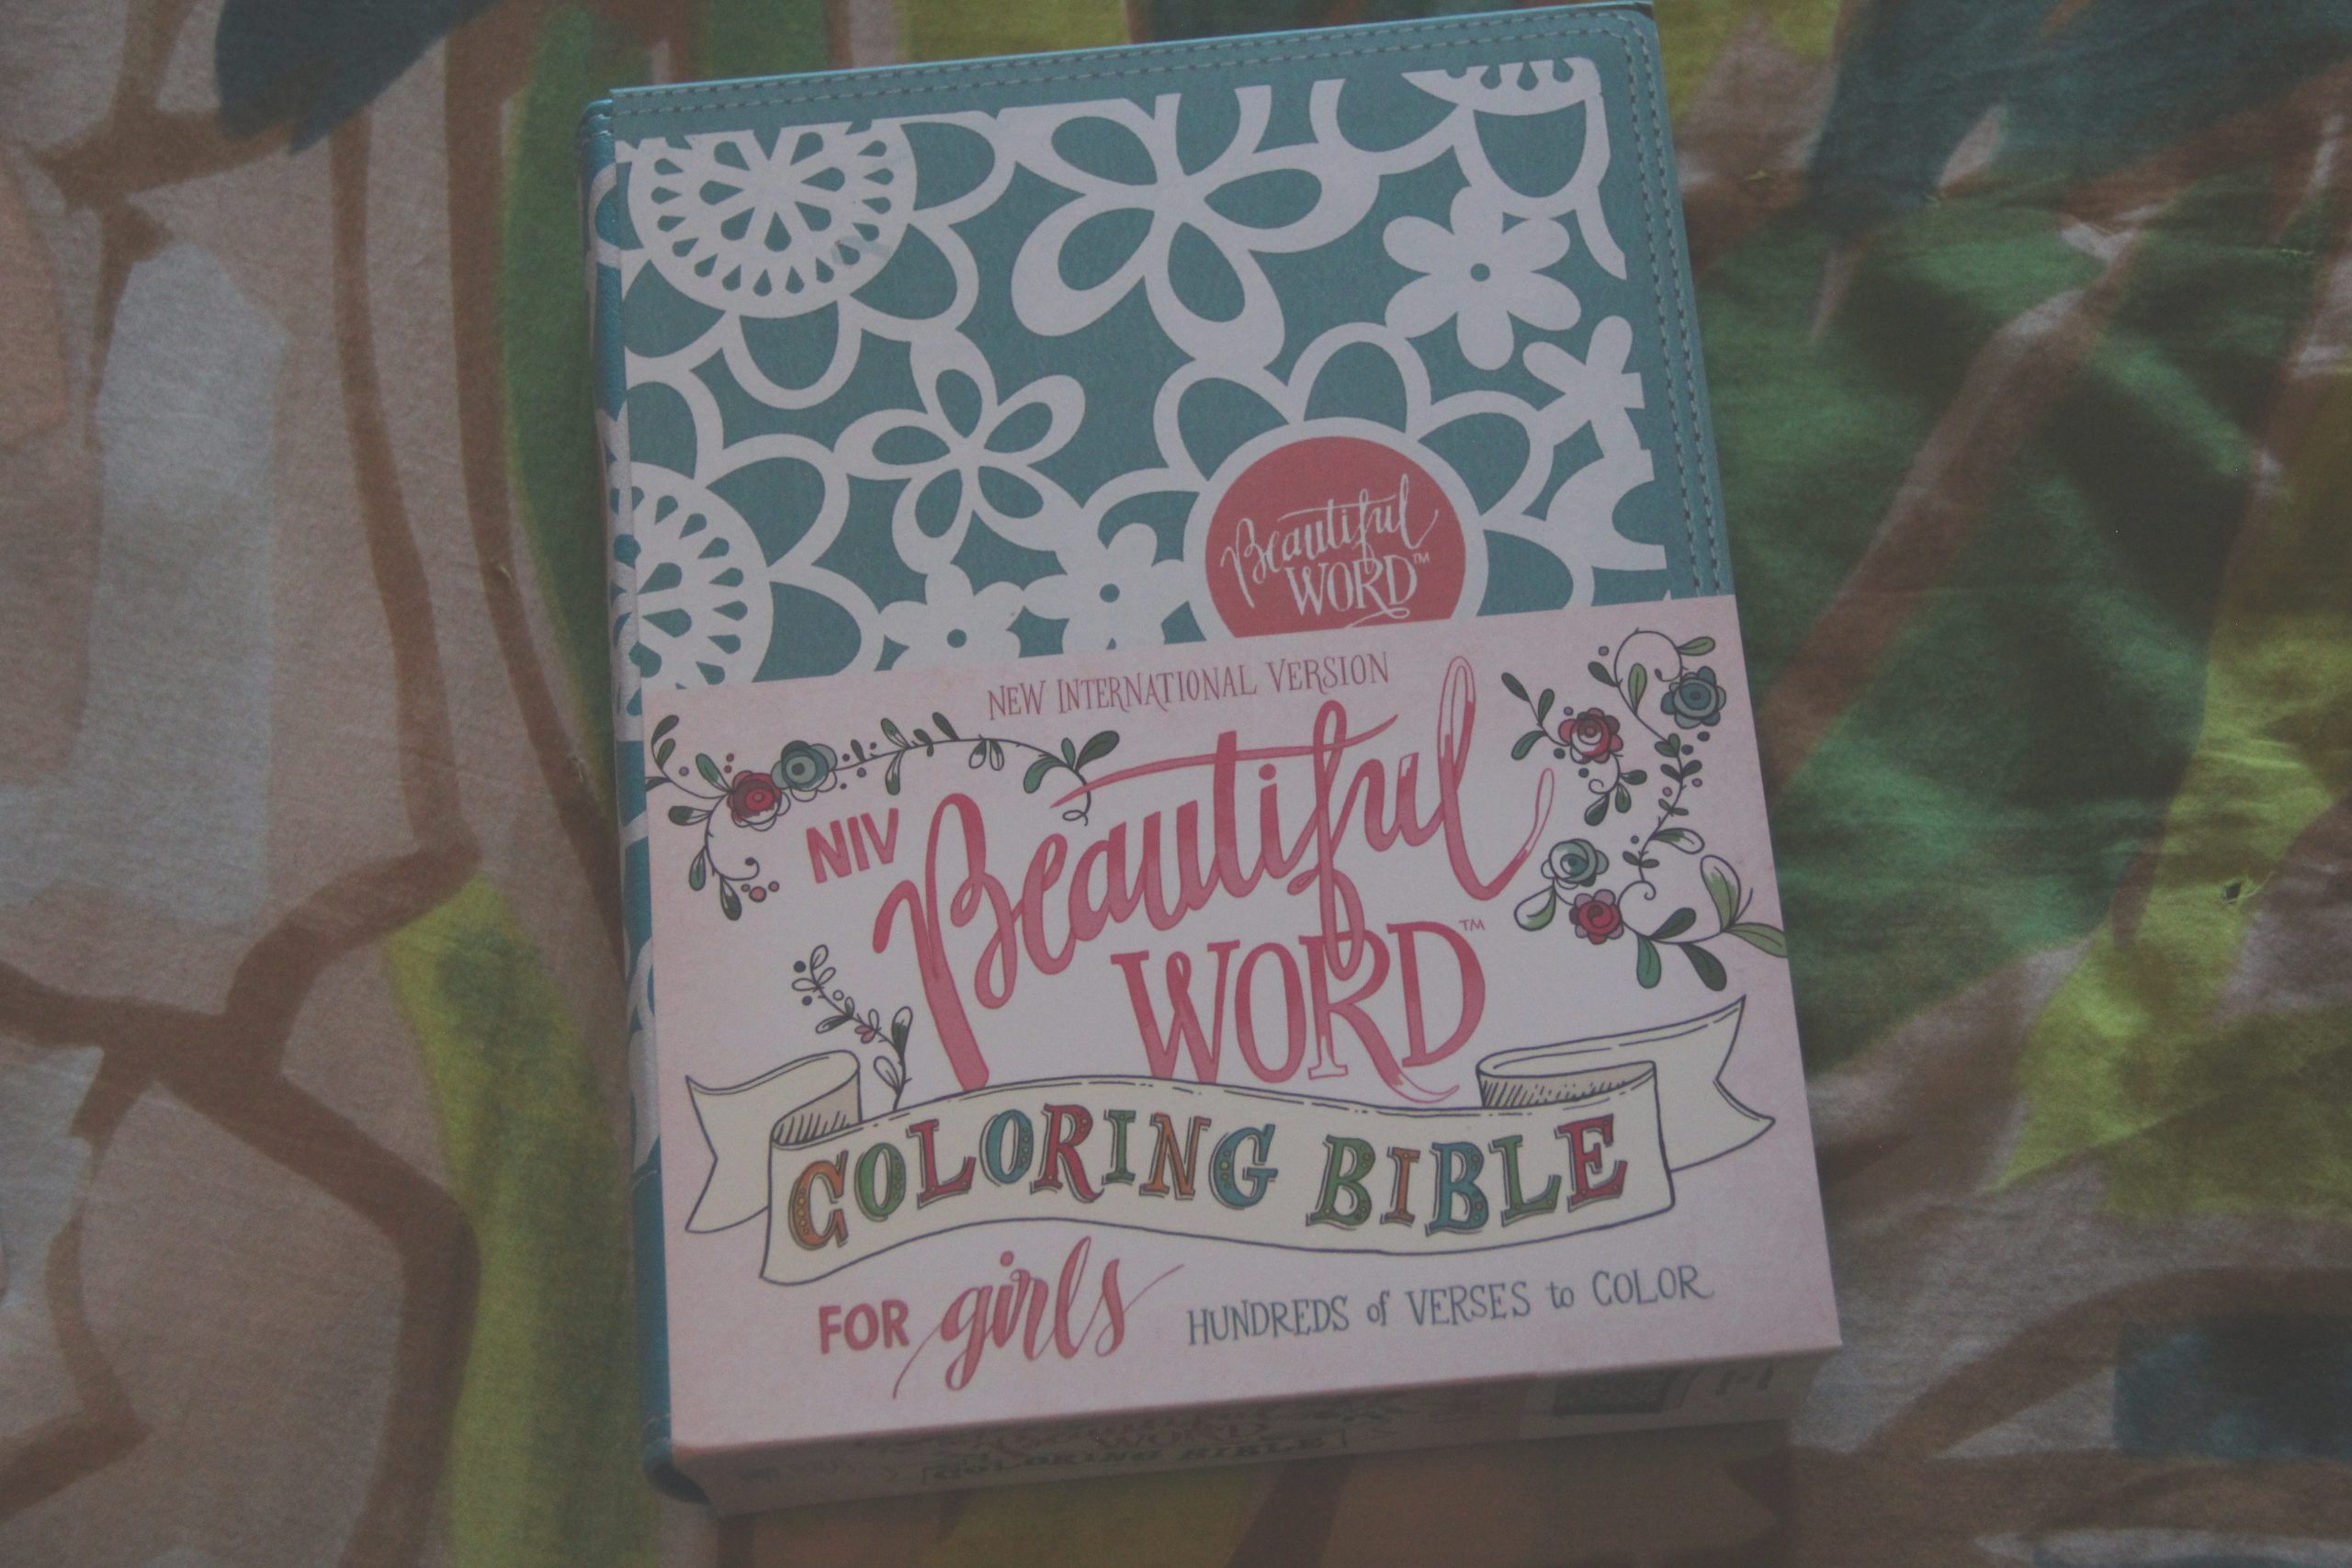 niv beautiful word coloring bible for girls